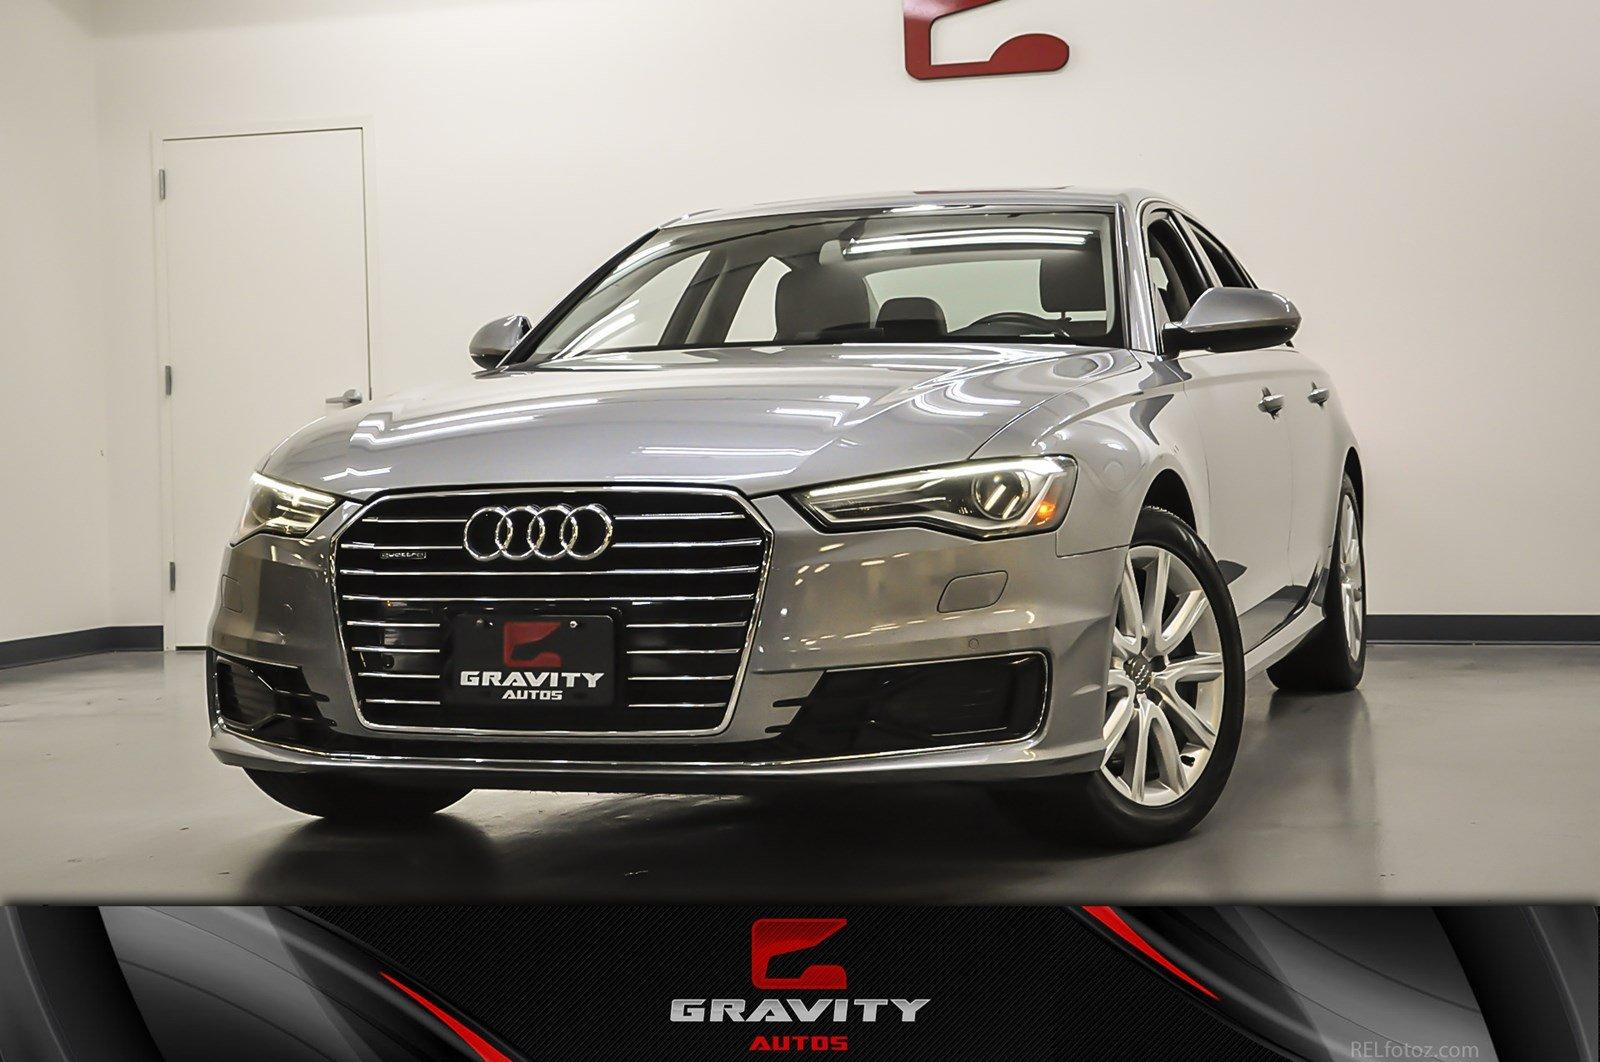 2016 audi a6 2 0t premium plus stock 006719 for sale near marietta ga ga audi dealer. Black Bedroom Furniture Sets. Home Design Ideas